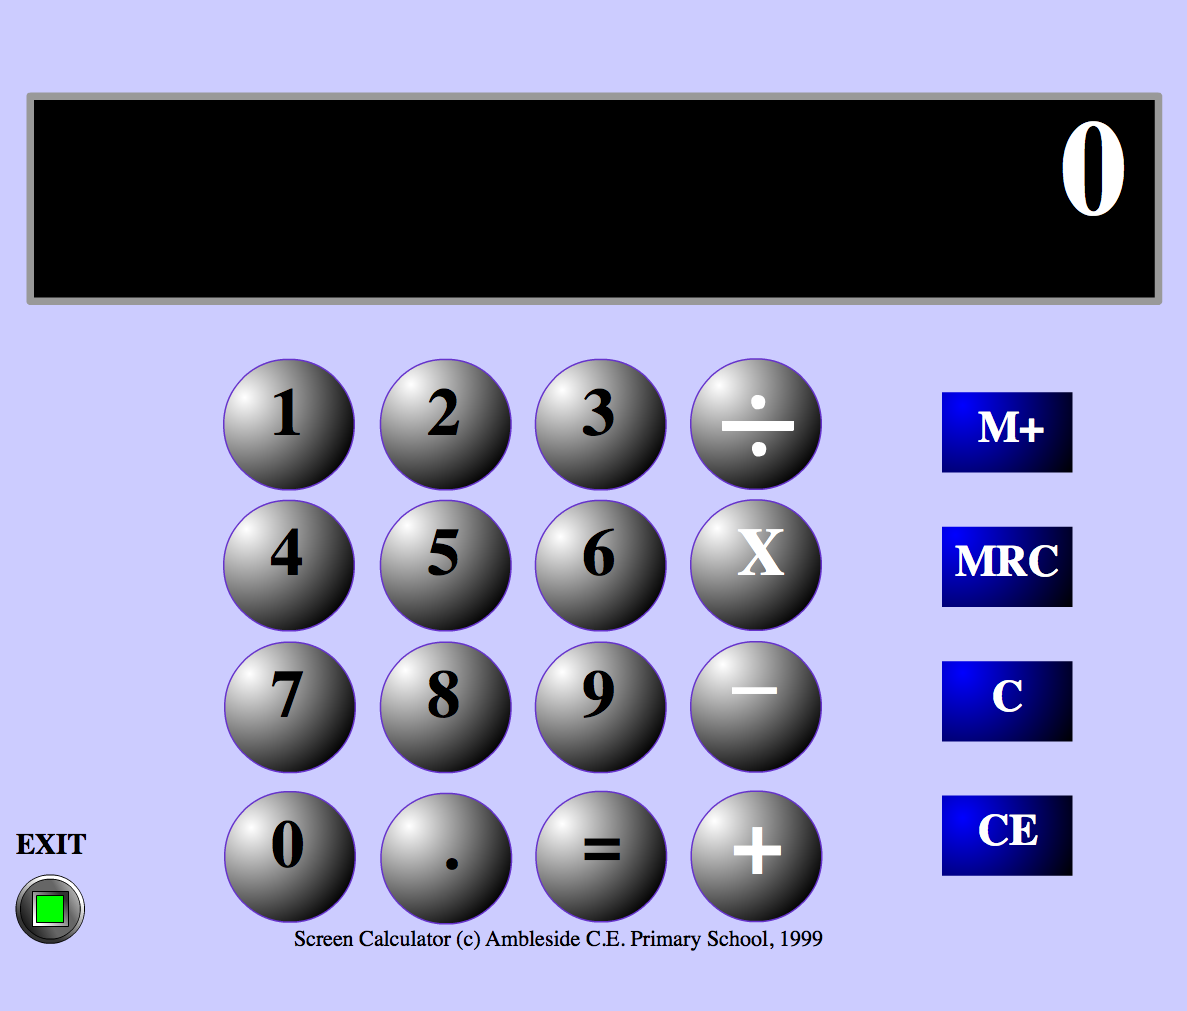 Big Calculator: A lovely full screen big calculator which displays at around font size 72+ depending on the screen size. It highlights your number and symbol selections and makes sounds to indicate choices. Switch and keyboard accessible using tab and enter keys. Great for whole class teaching with the interactive whiteboard, or for individual use on a laptop. Simple and straightforward, with good accessibility.